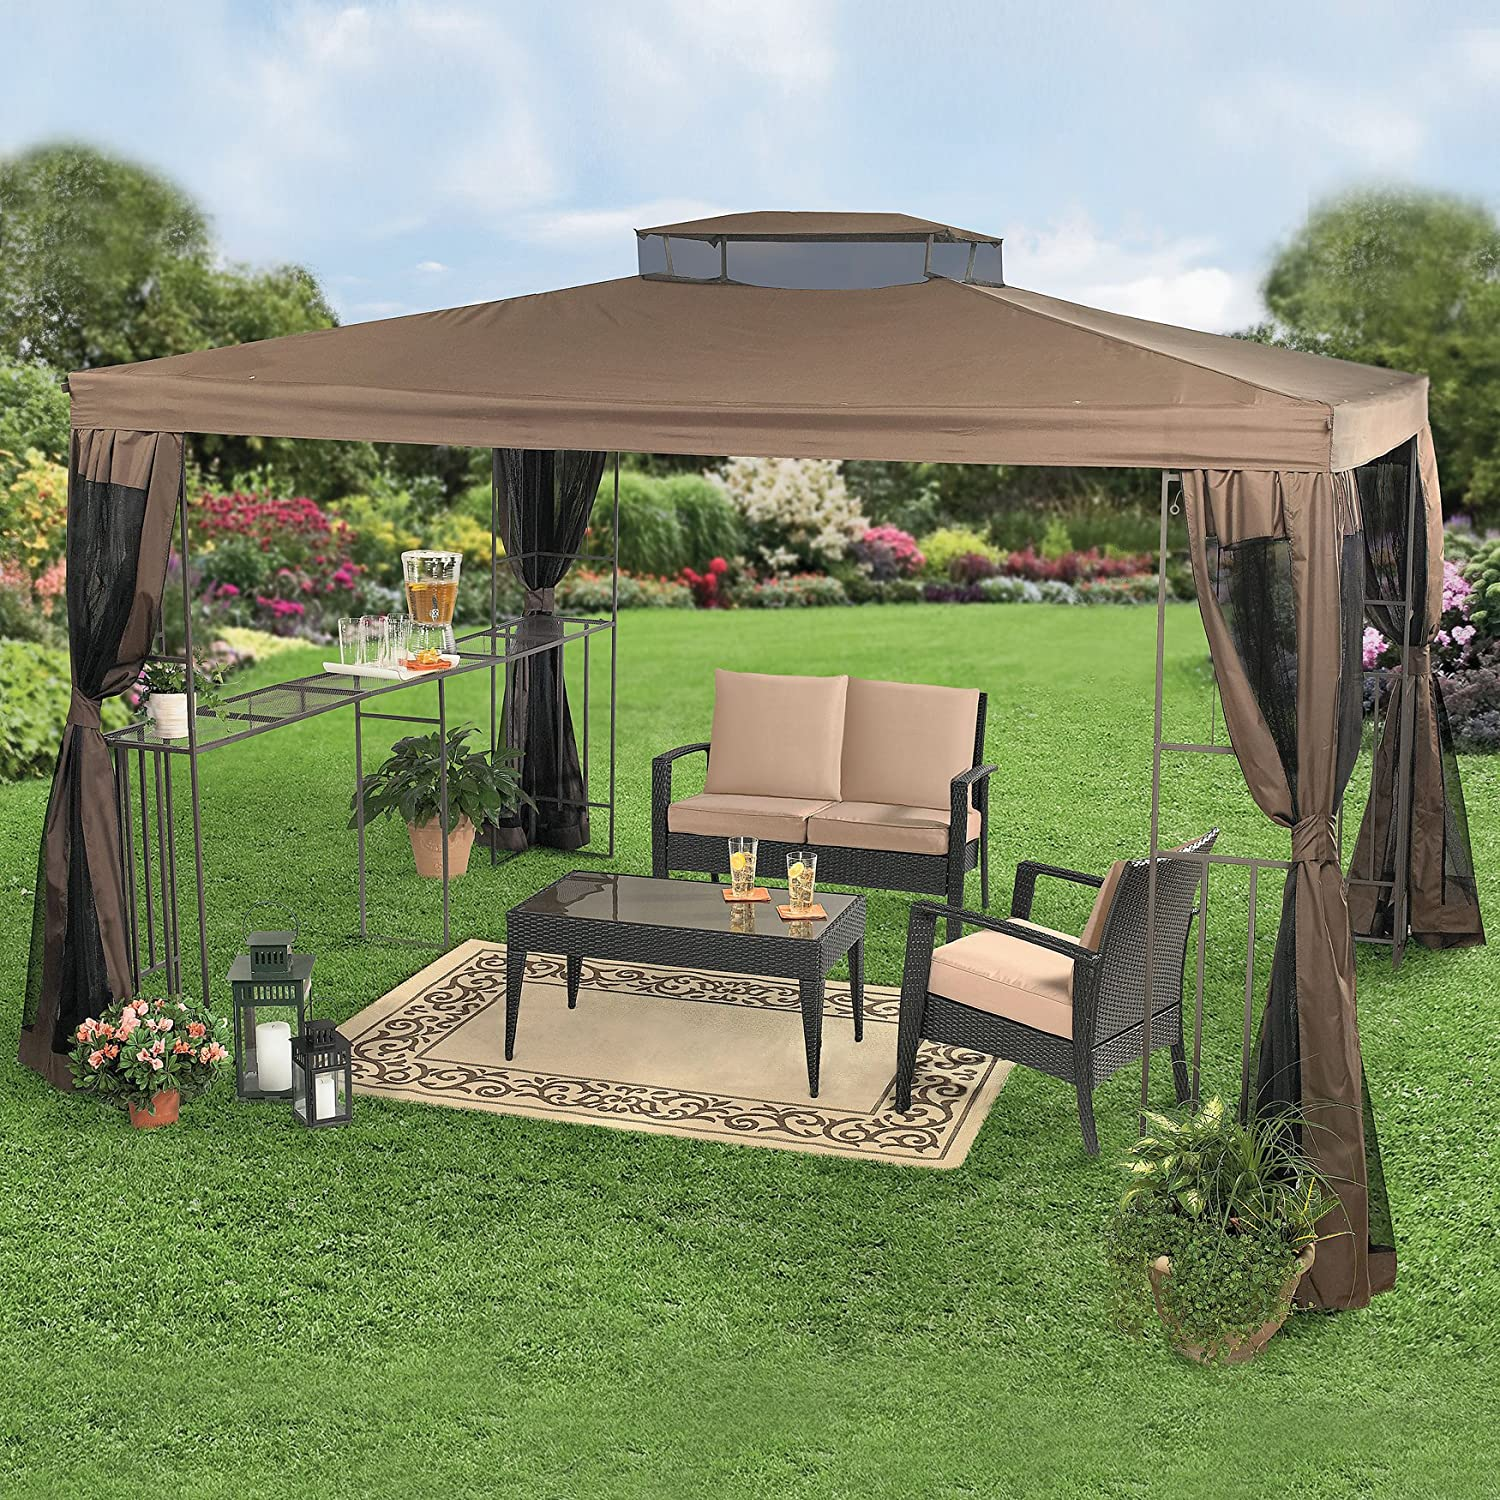 Home and Garden Design Ideas Beautiful Rectangular Gazebo With Bar